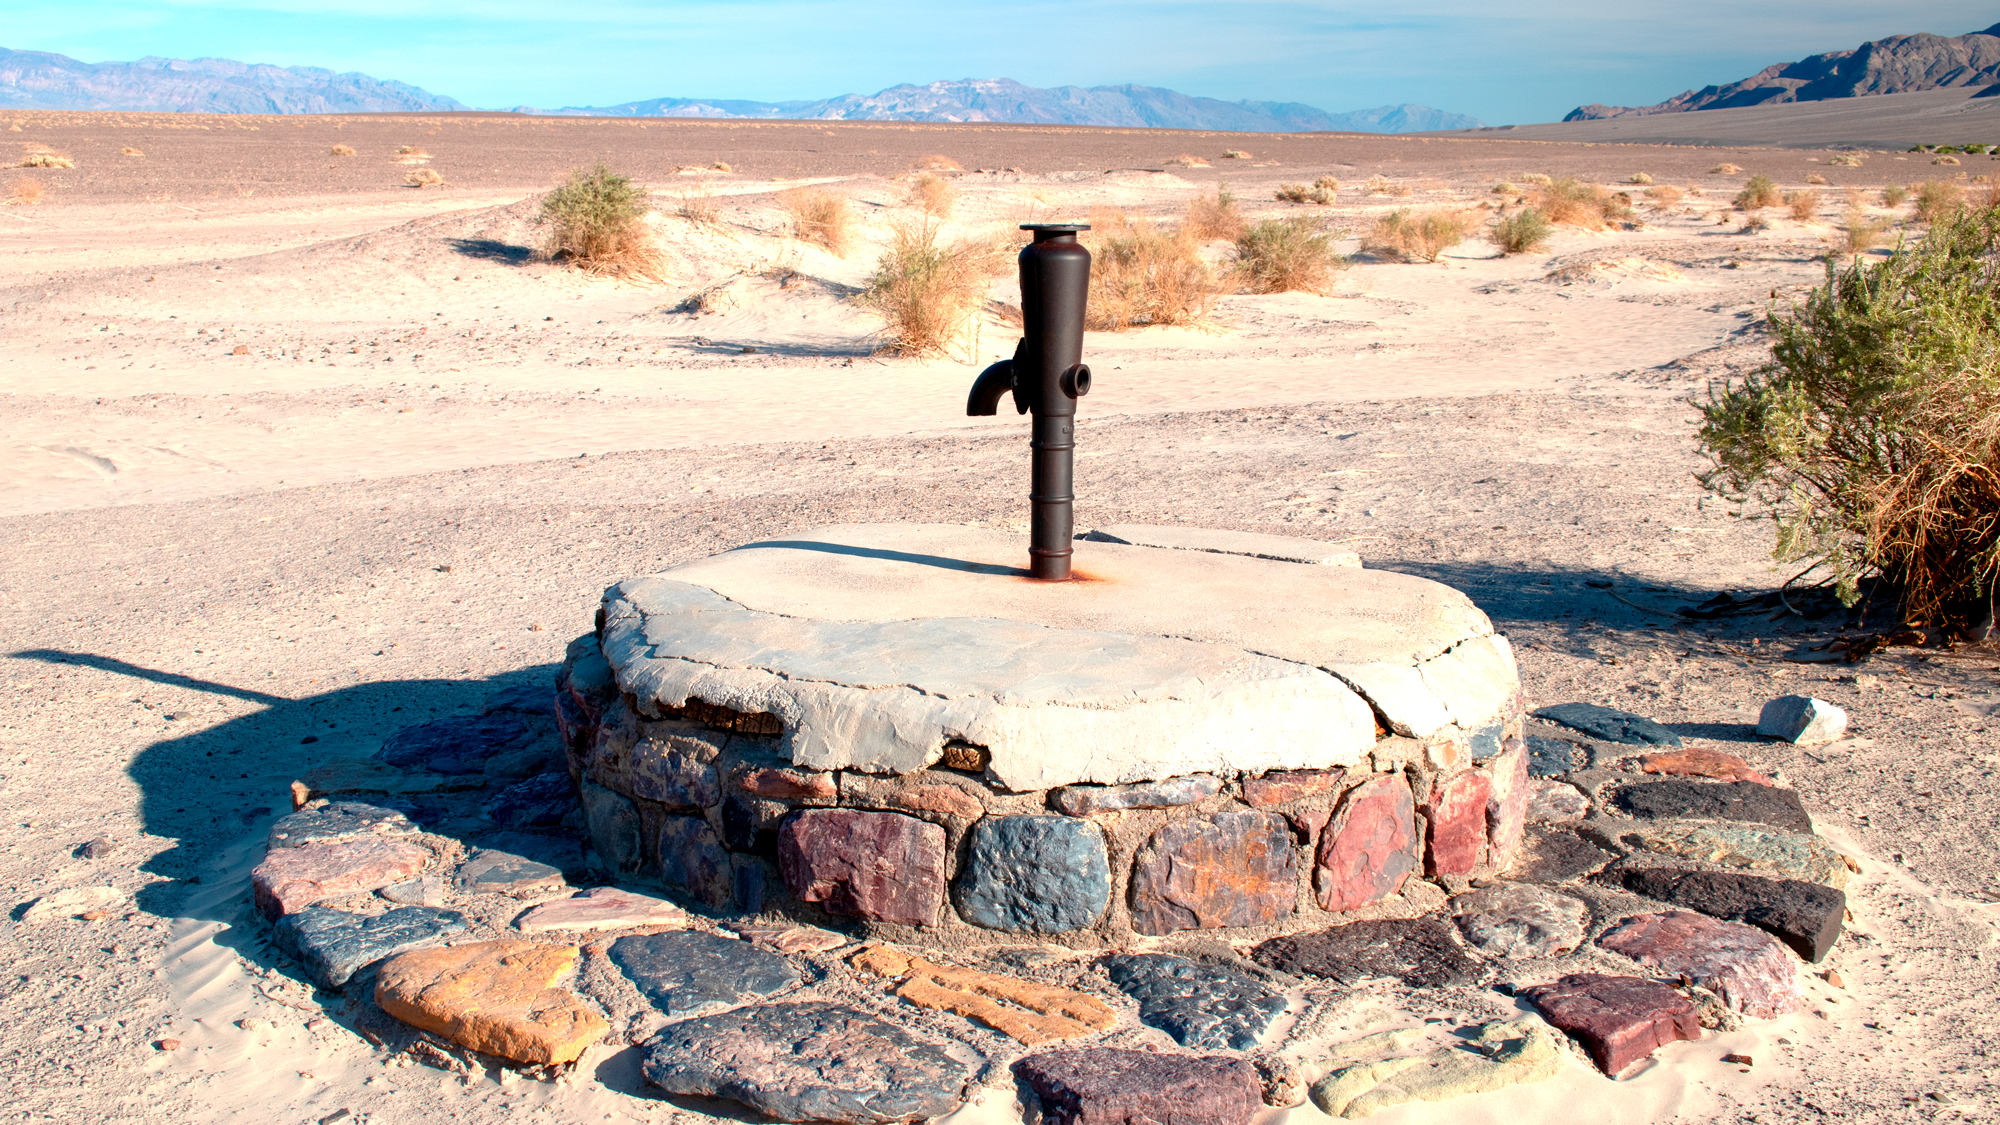 Photo of the stovepipe market for Stovepipe Well in Death Valley National Park